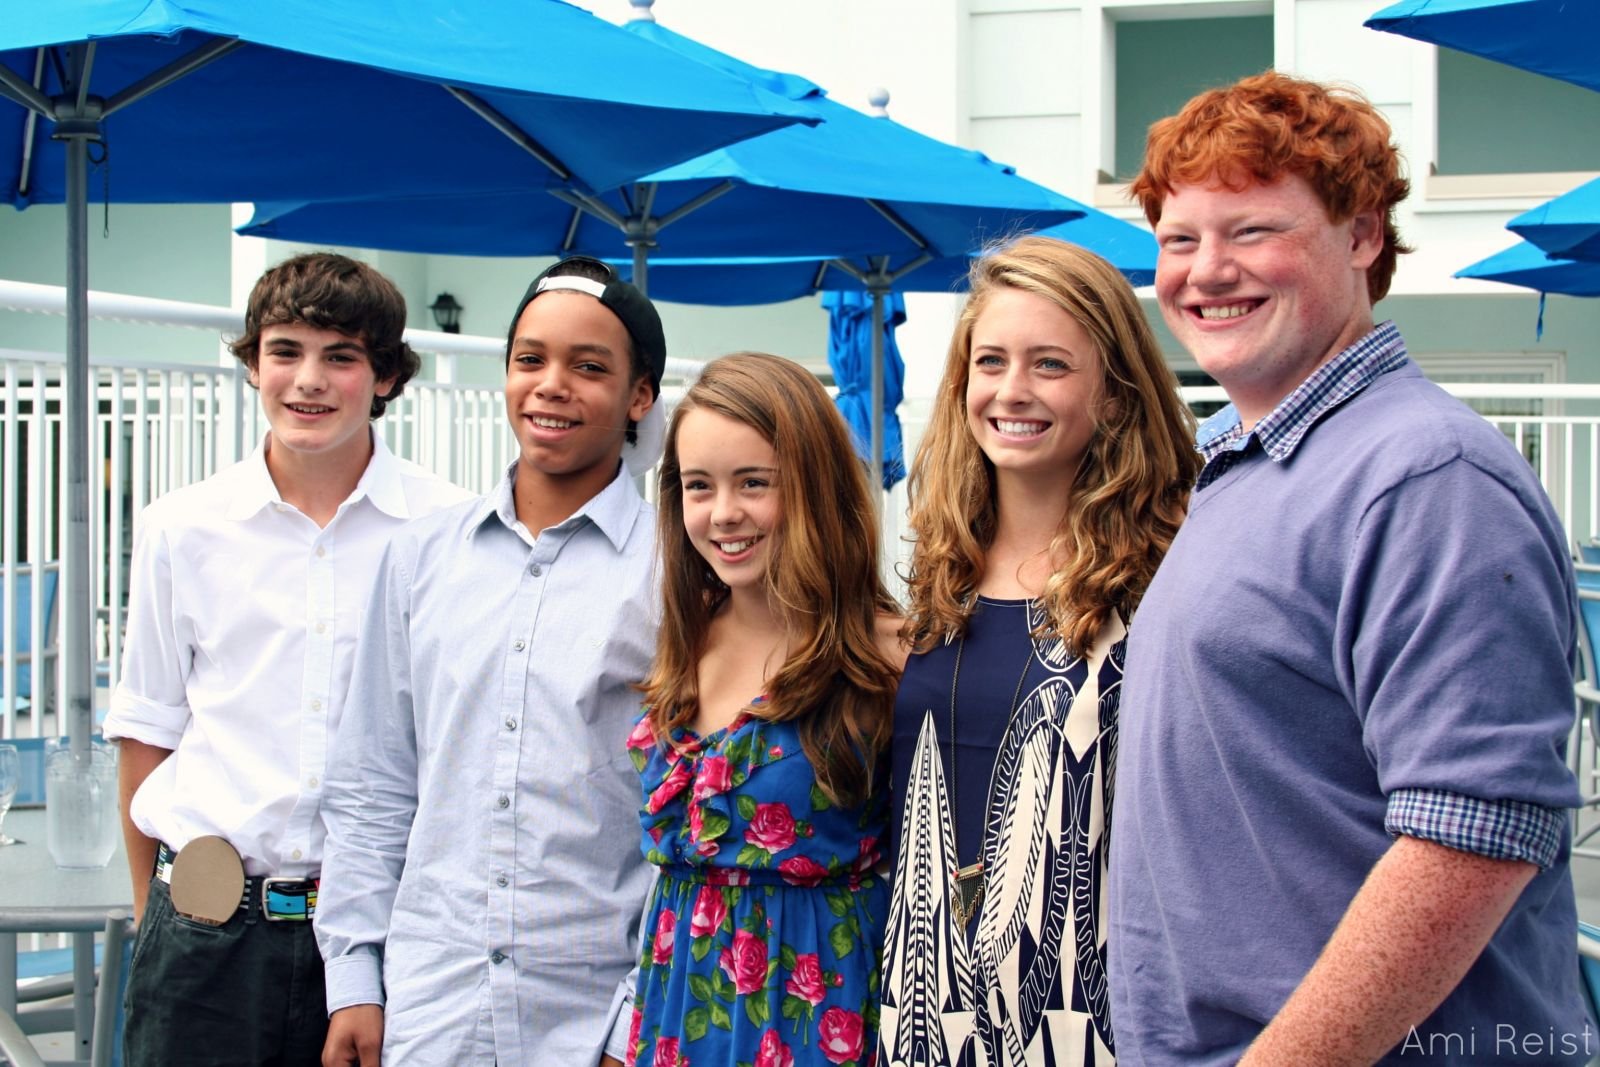 PHOTO CREDIT:  Above photo of the young cast is by Ami Reist , Staff Writer at Shore Bread.